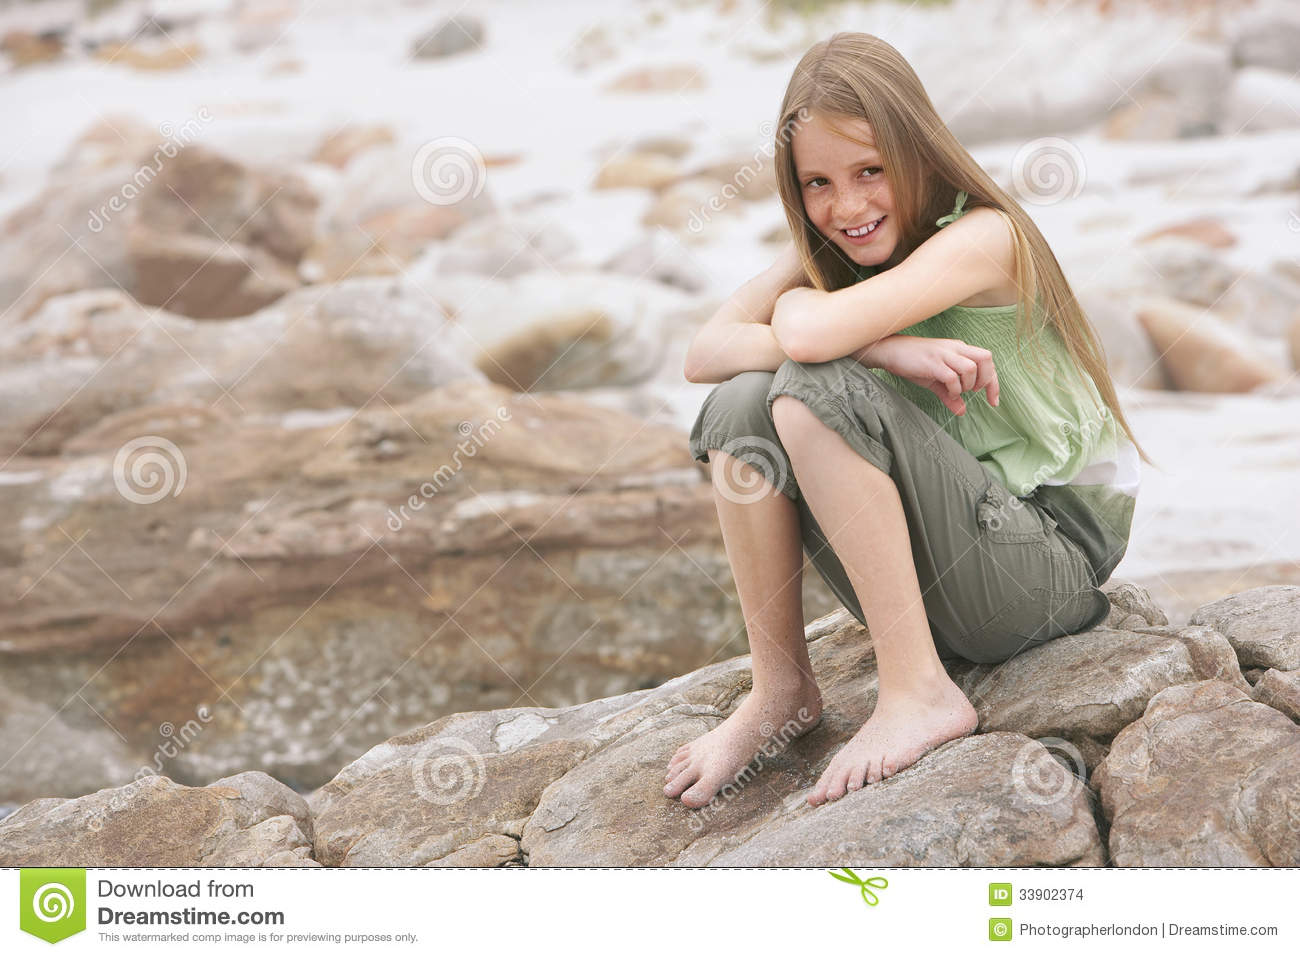 Girl sitting on rock wish